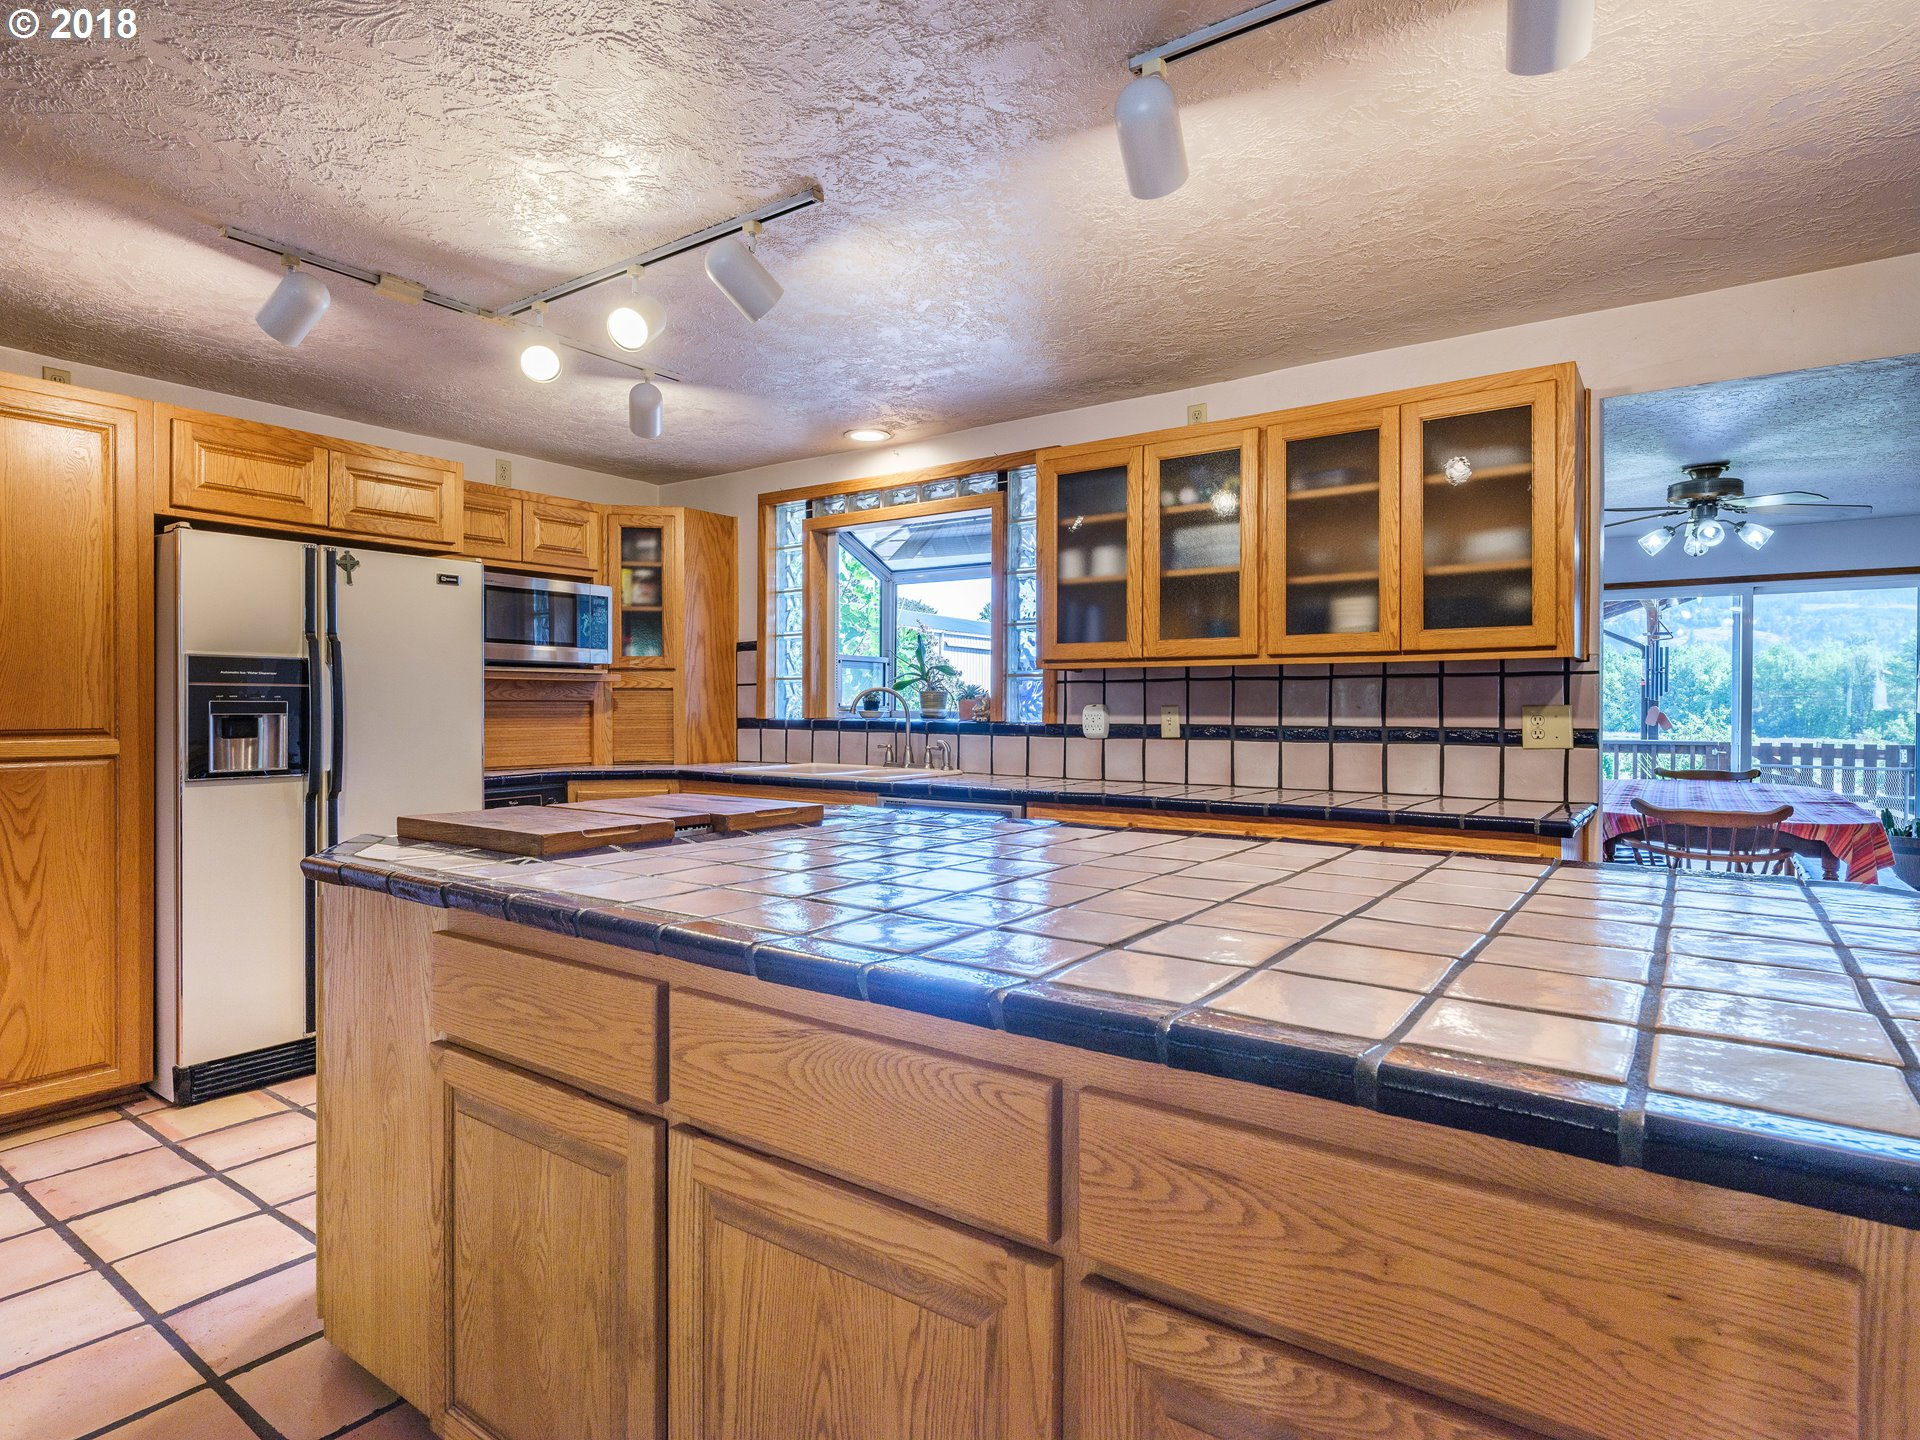 90207 HILL RD Springfield, OR 97478 - MLS #: 18626129